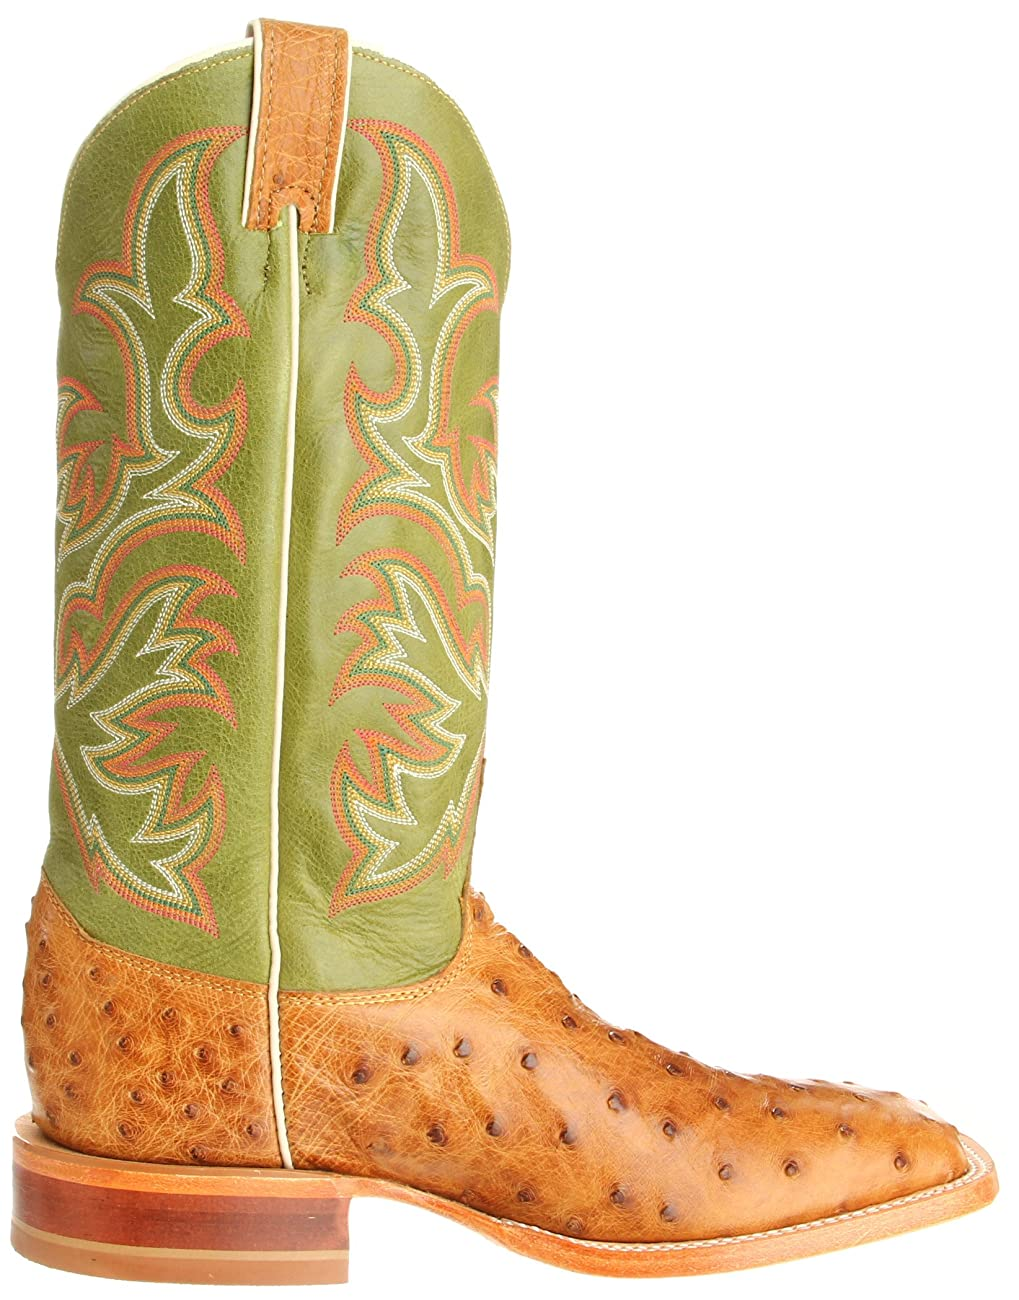 Justin Boots Men's Aqha Broad Square-toe Remuda Boot 5